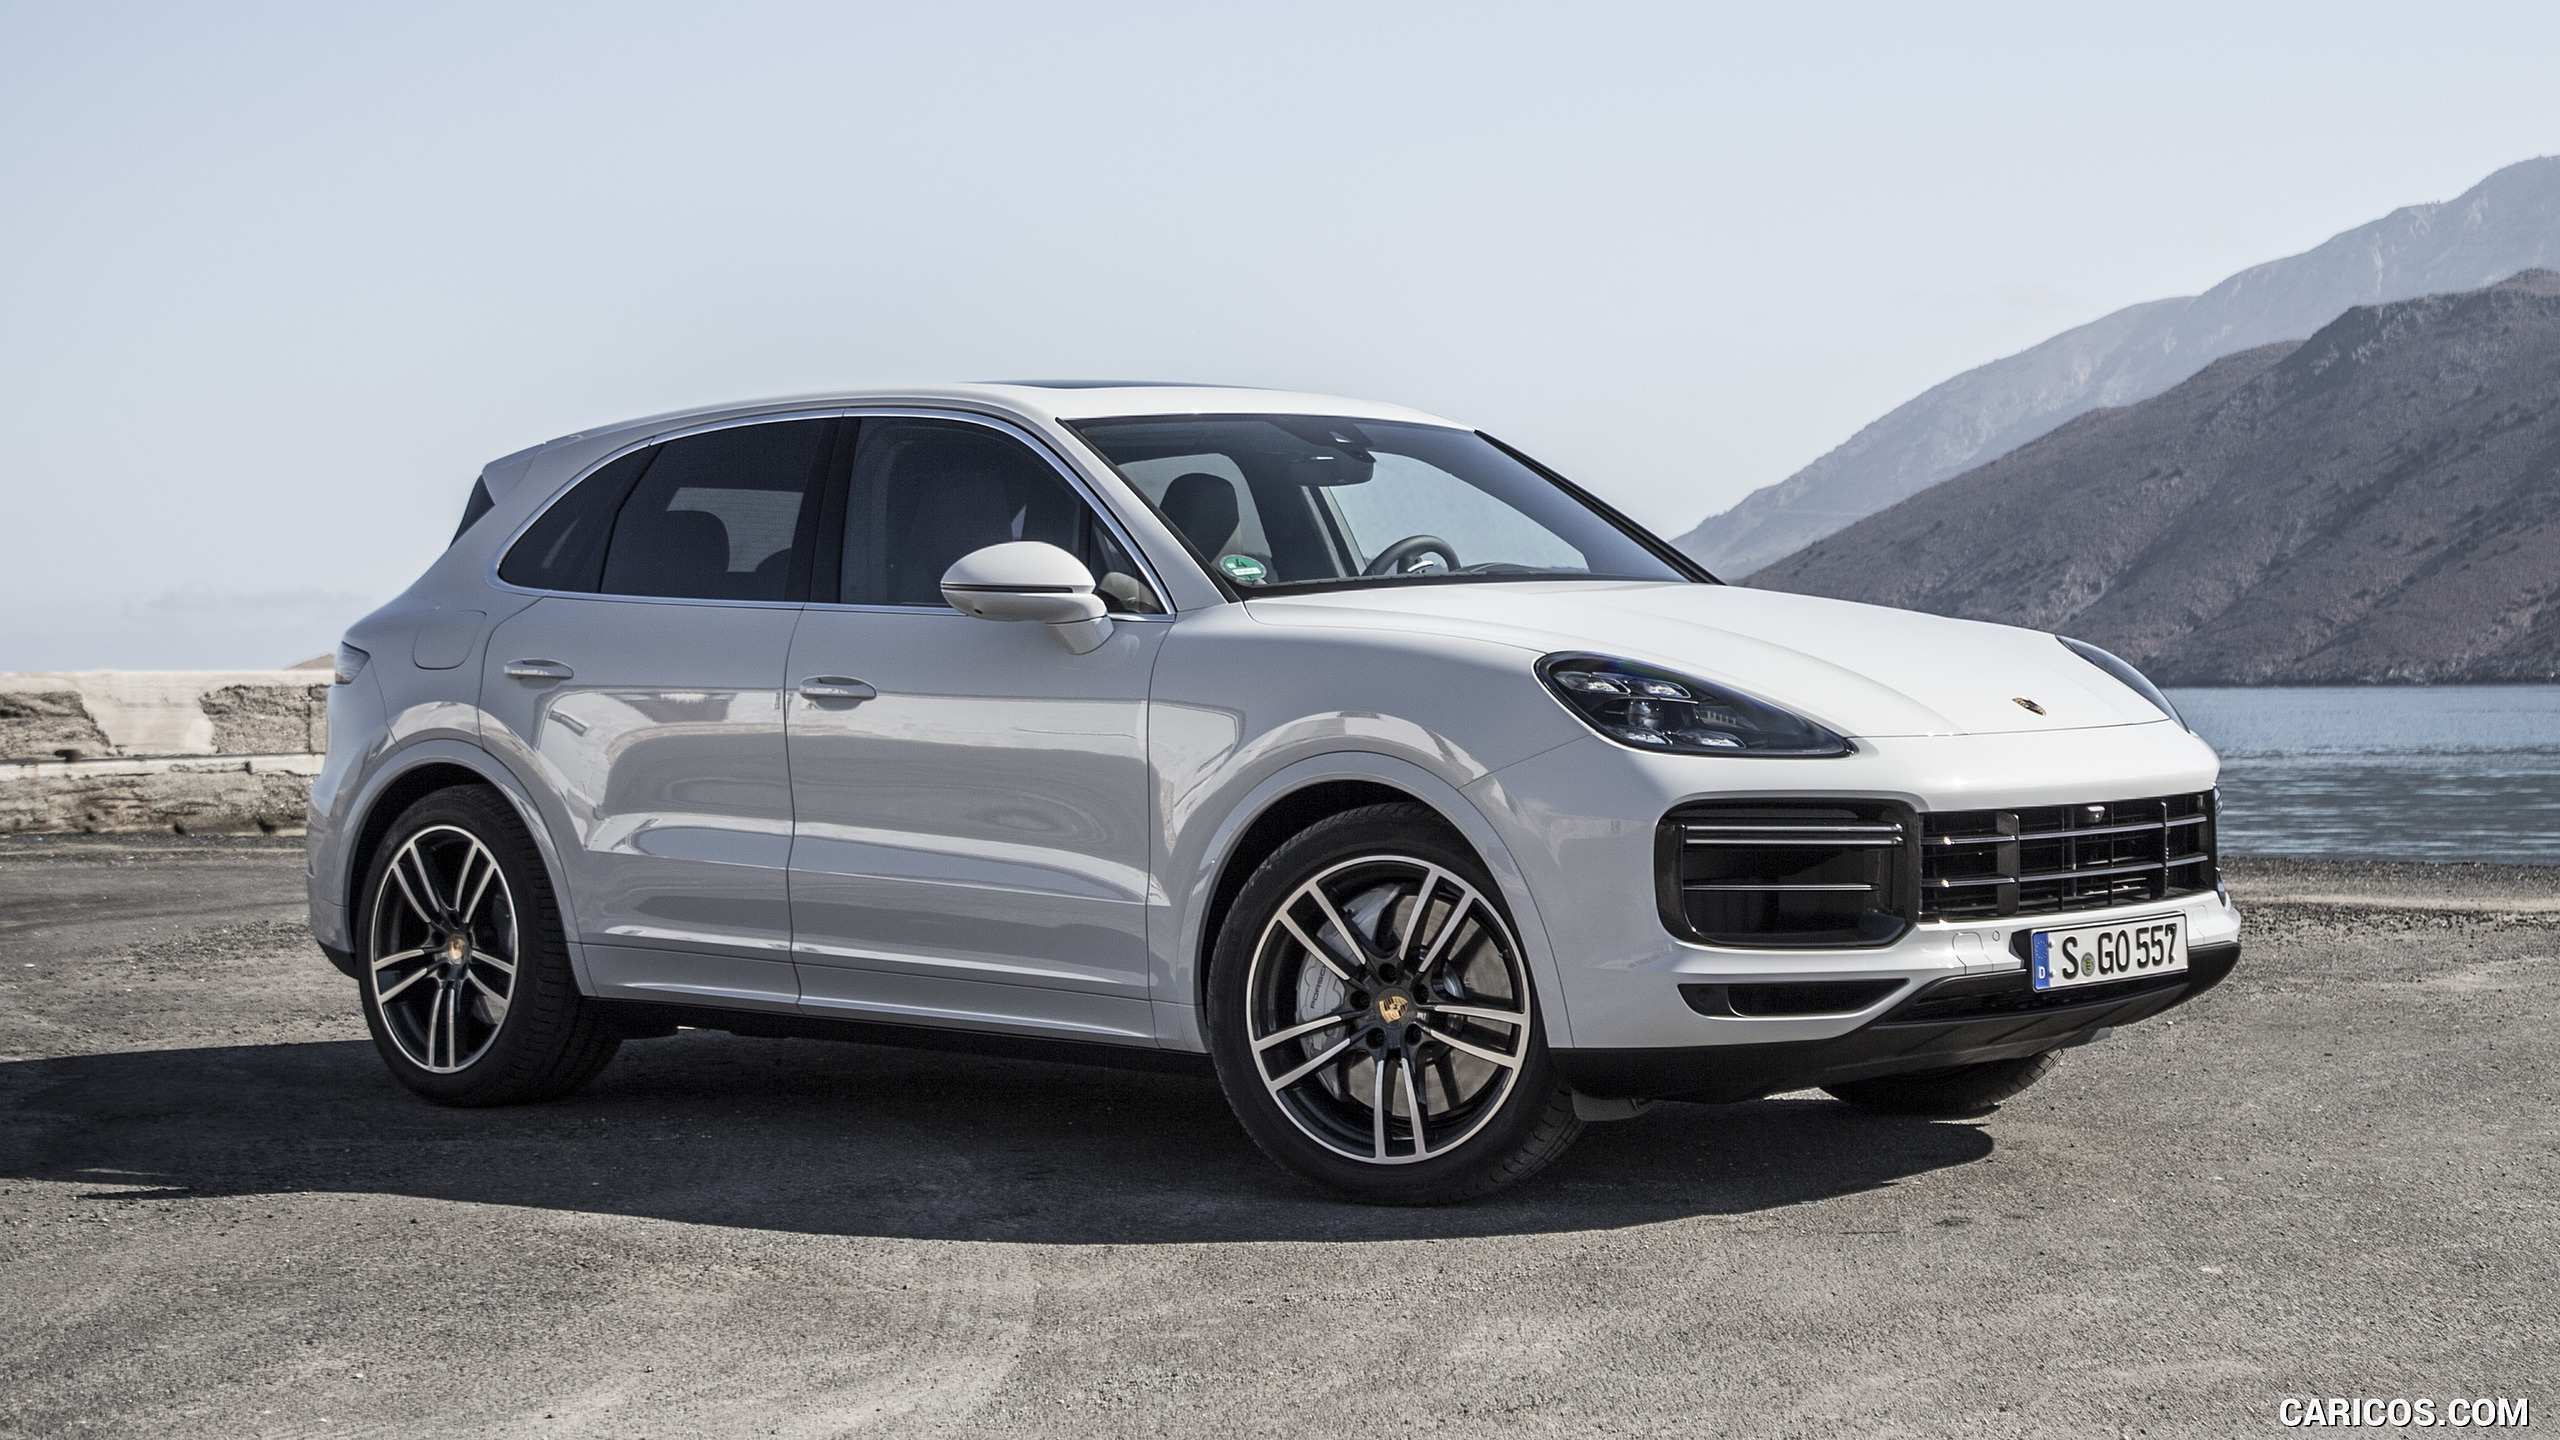 56 Best Review 2019 Porsche Cayenne Turbo Review First Drive with 2019 Porsche Cayenne Turbo Review